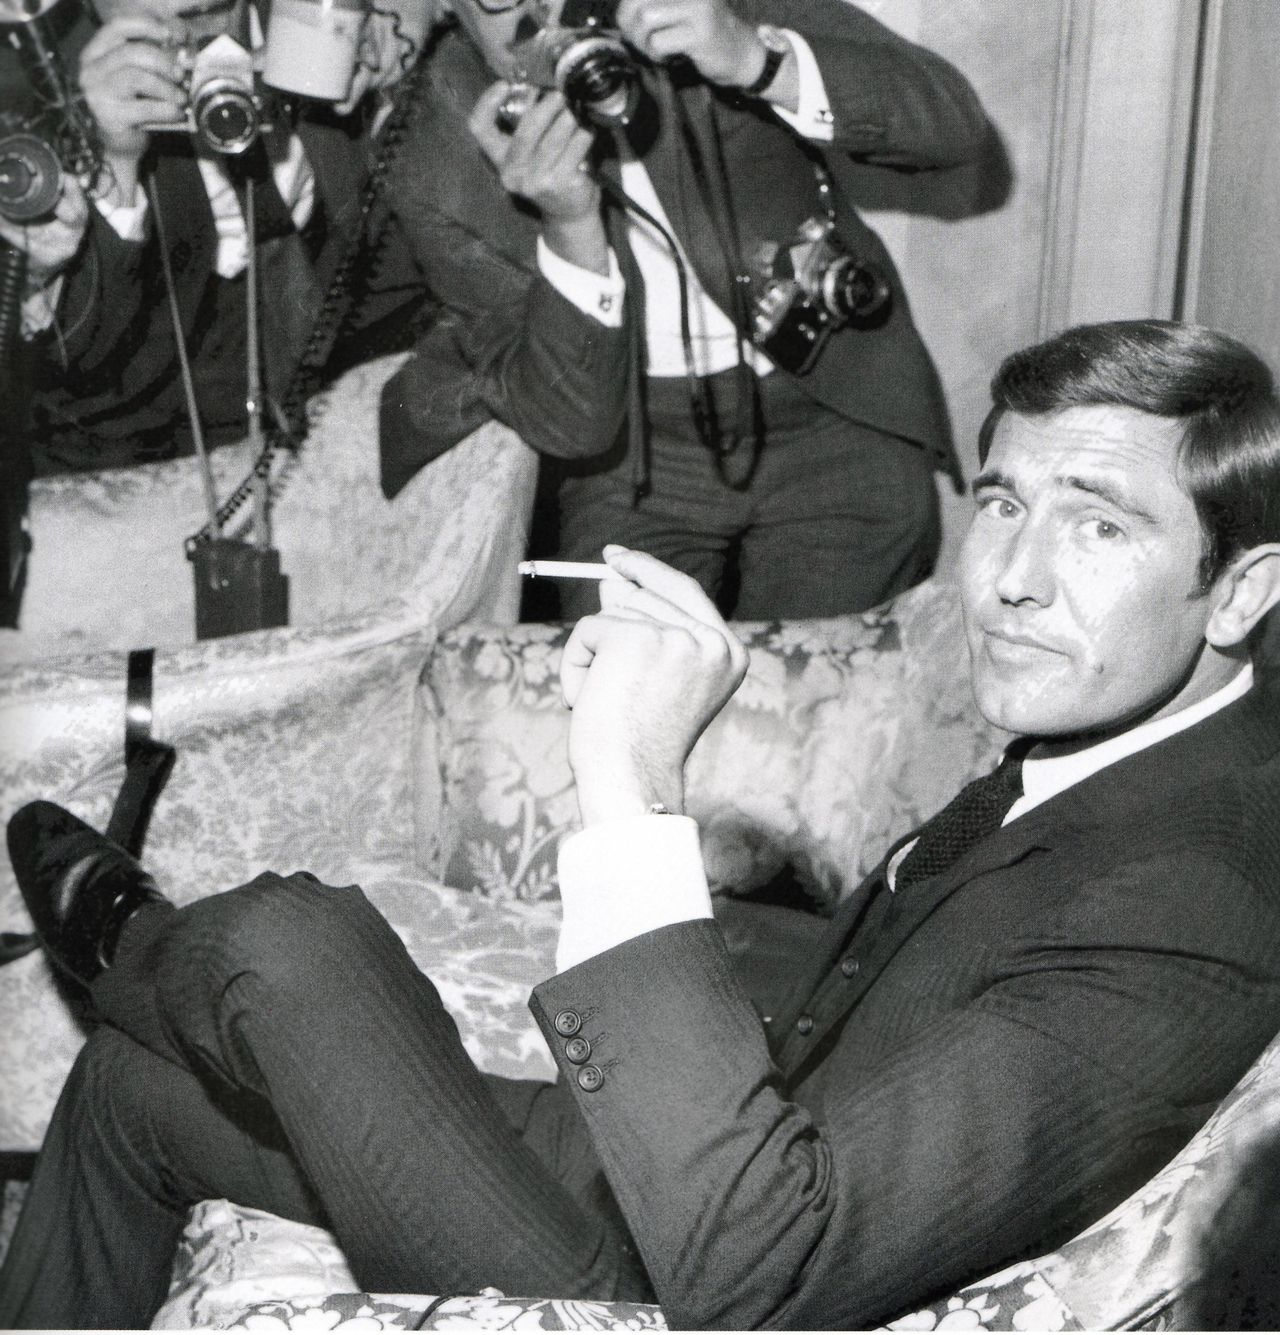 lazenby black and white smoking at the dorchester